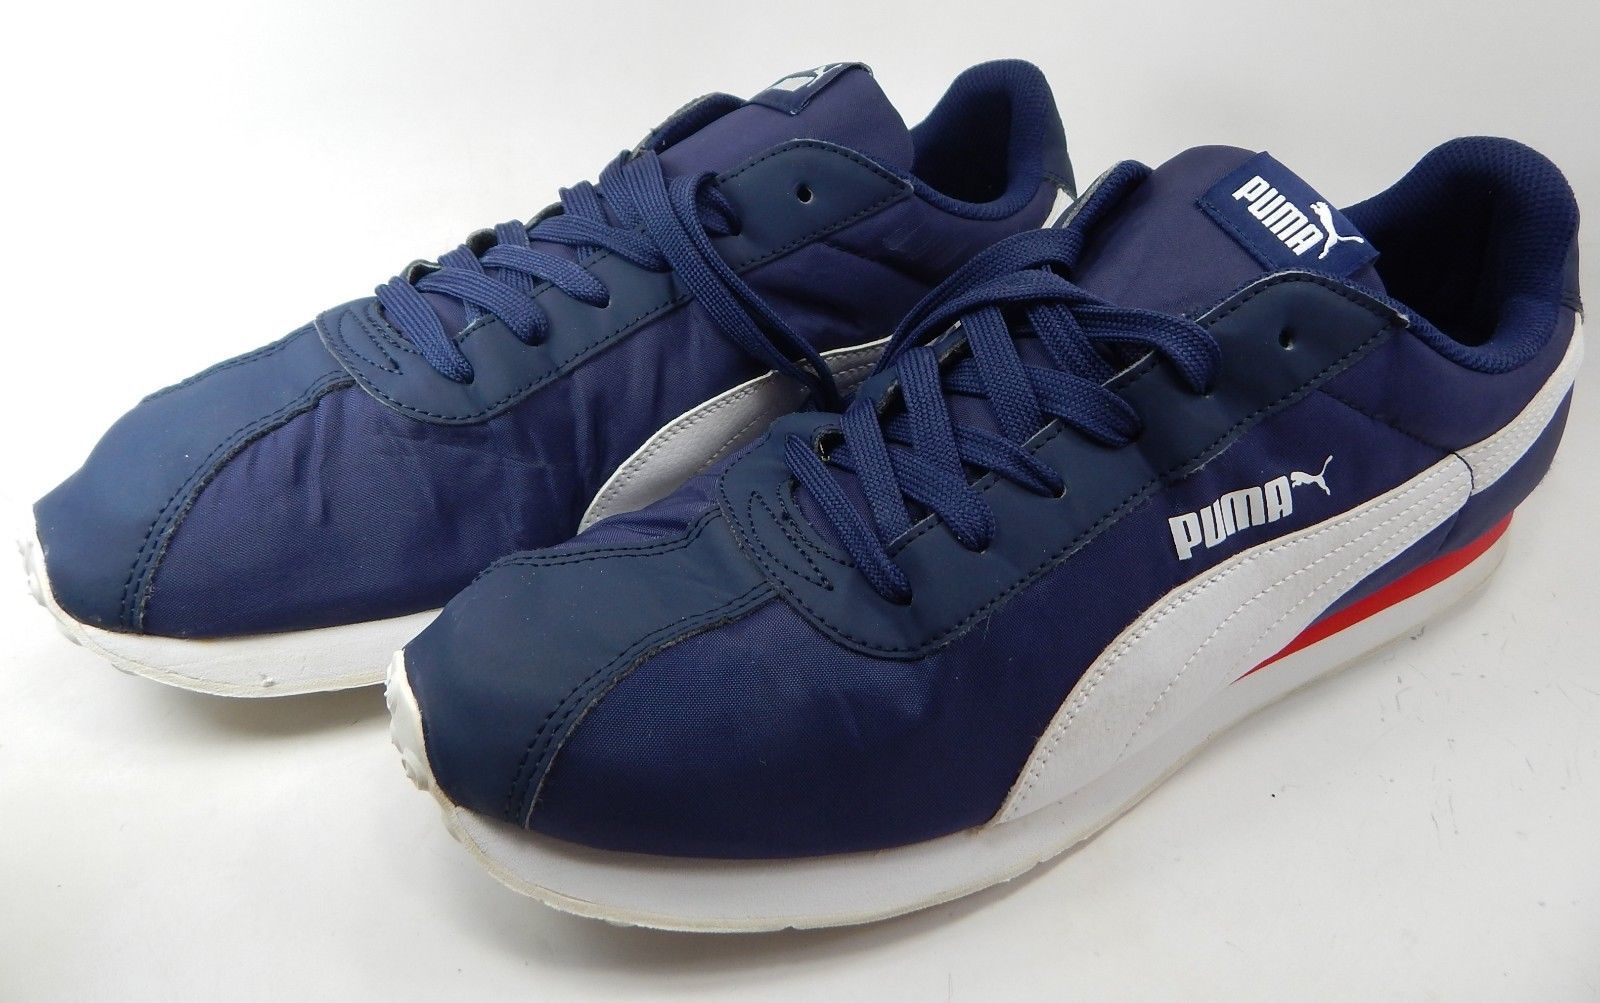 Puma Turin NL Trainers US 13 M (D) EU 47 Men's Nylon Casual Shoes Blue 362167 02